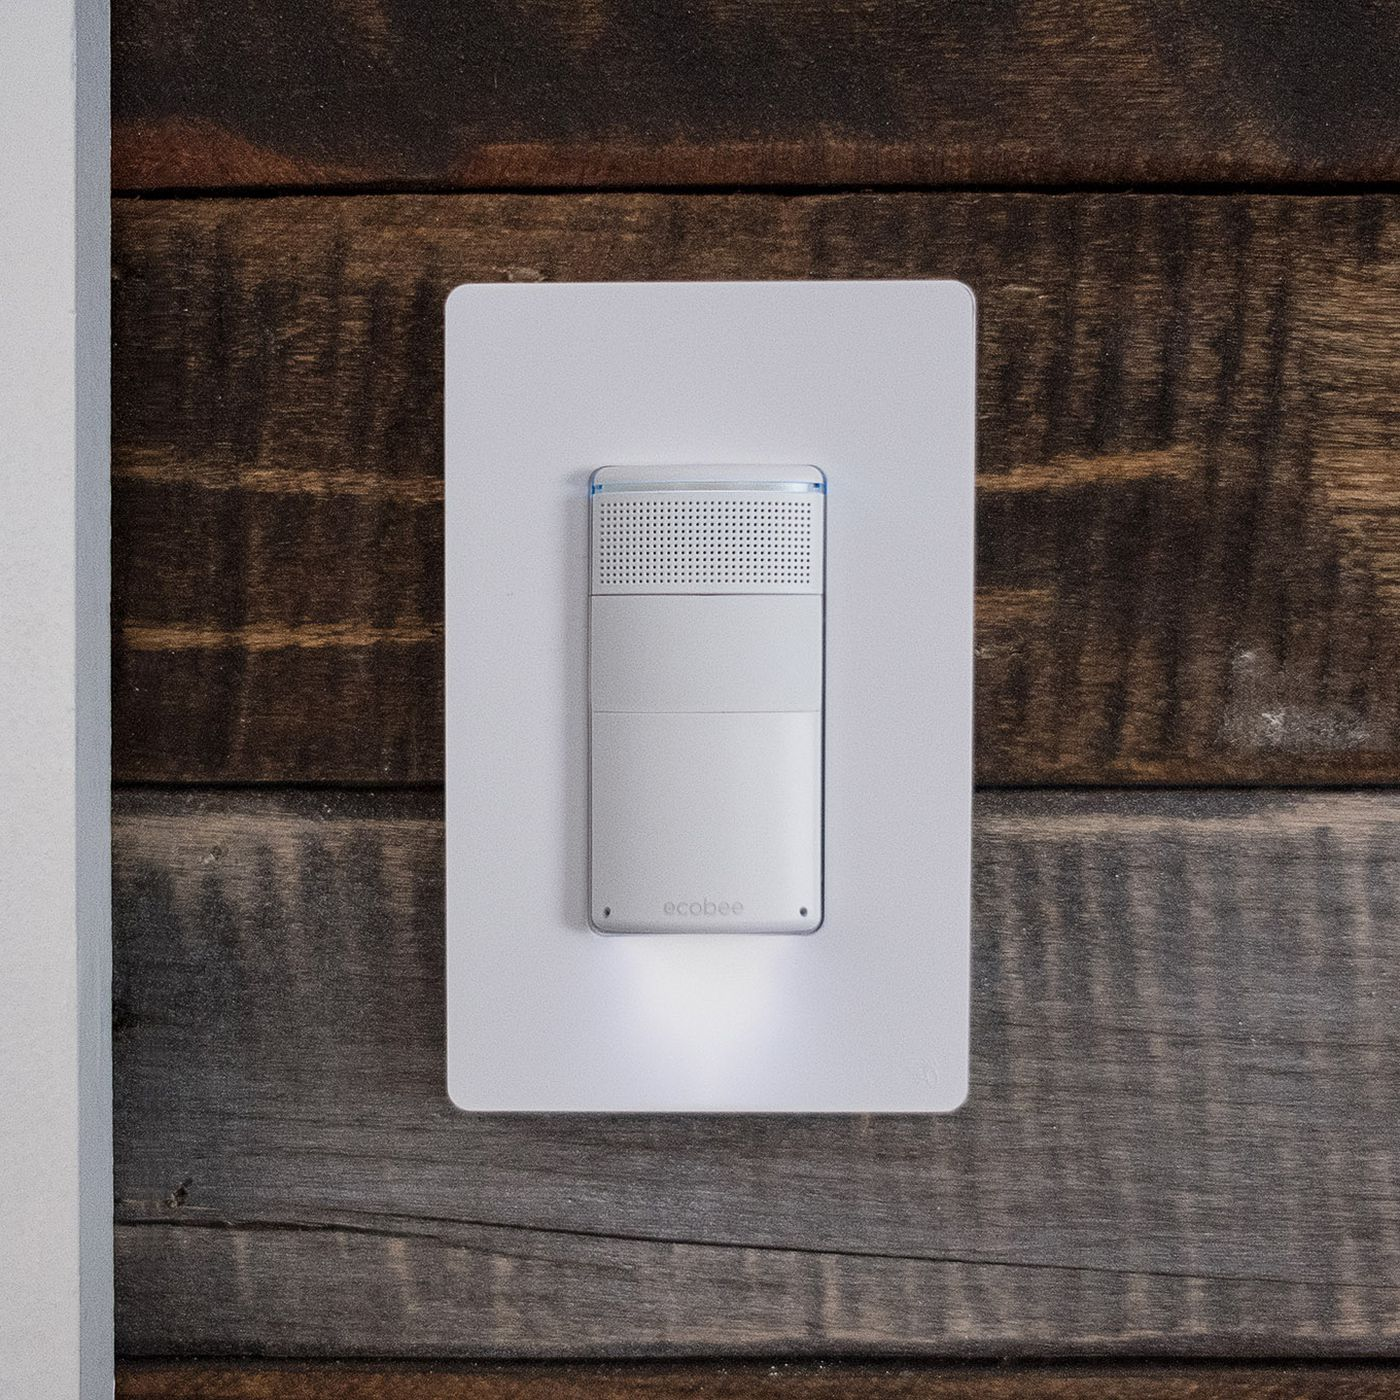 Ecobee\'s new Switch+ puts Alexa in your light switch - The Verge